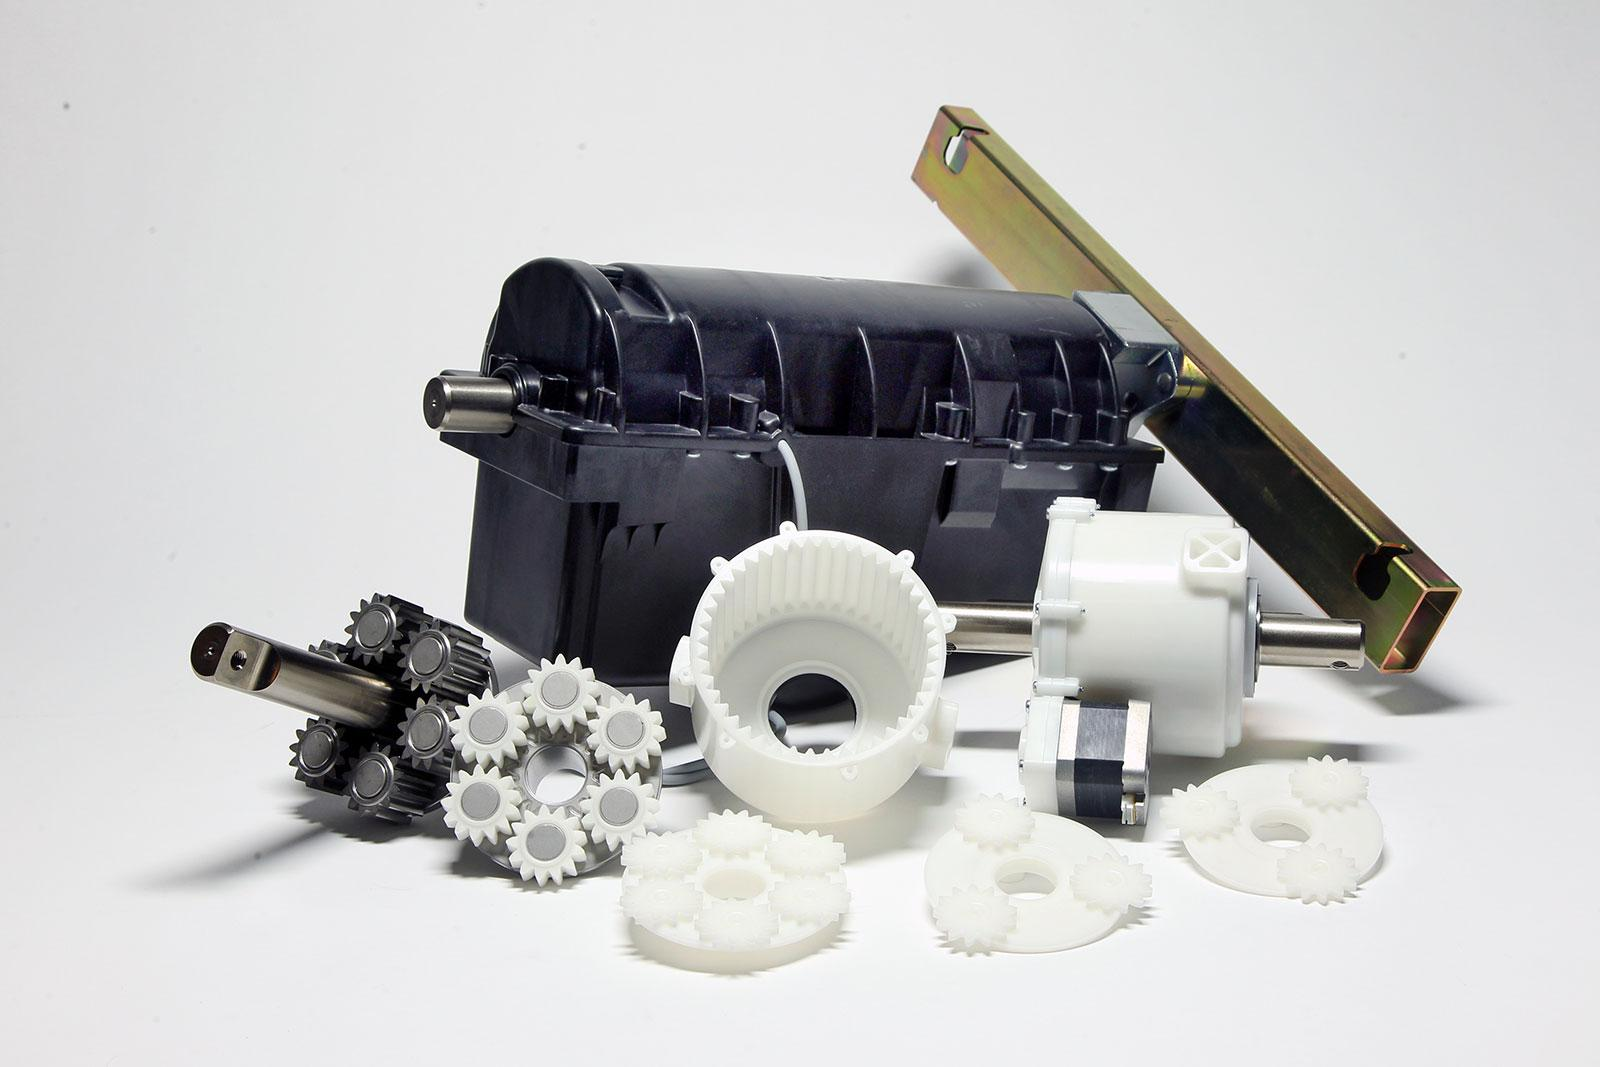 Seitz planetary gears and assemblies